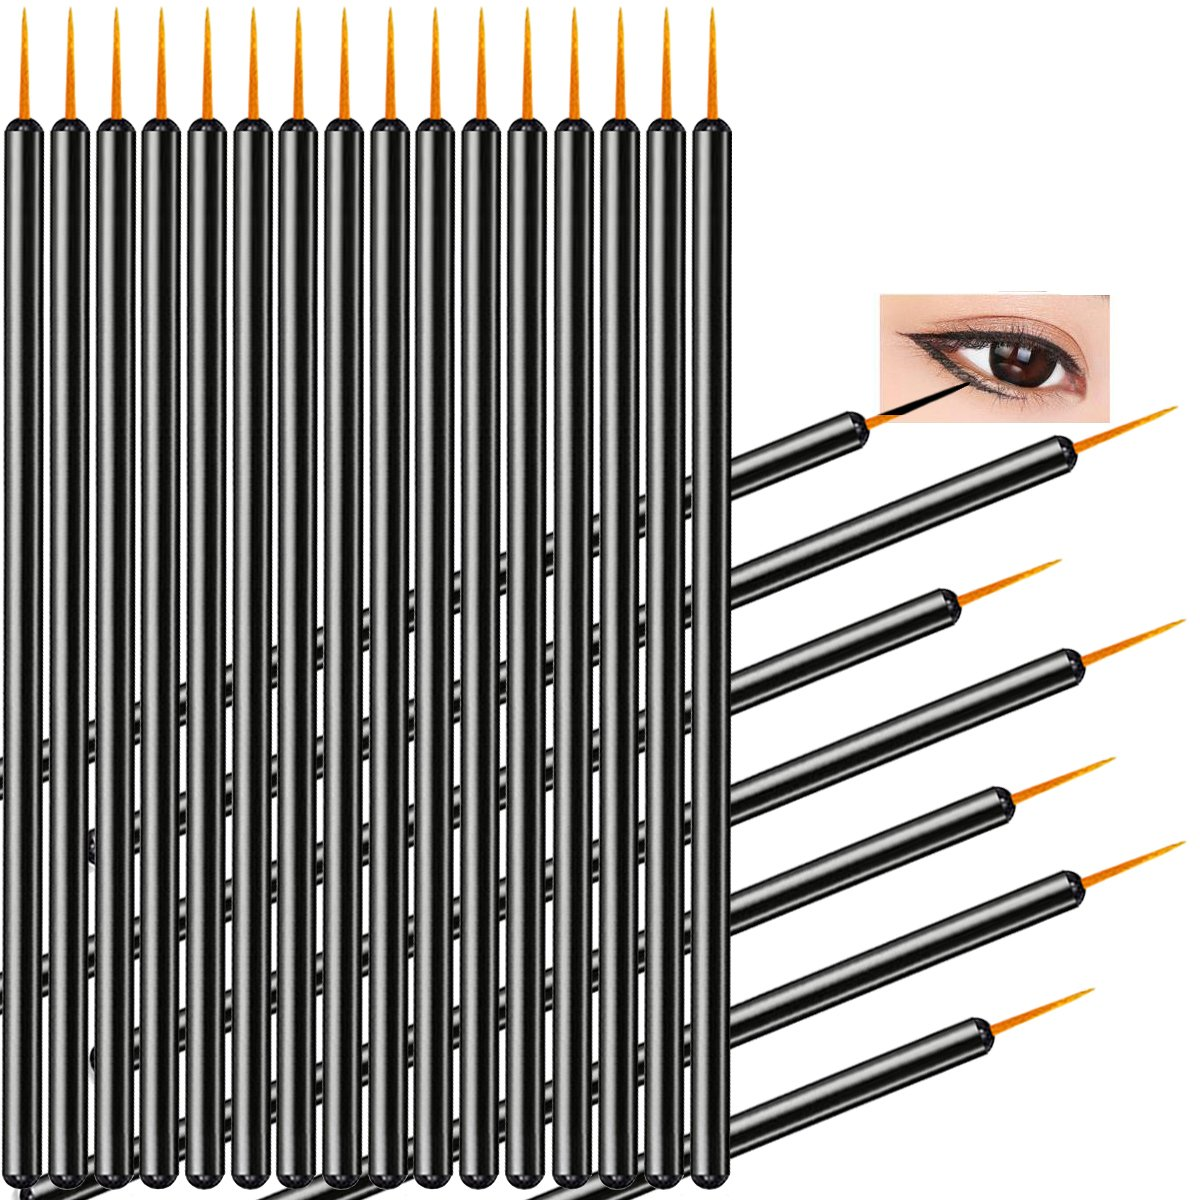 100 Pack Disposable Eyeliner Wands Applicator Makeup Tool Brushes Etercycle